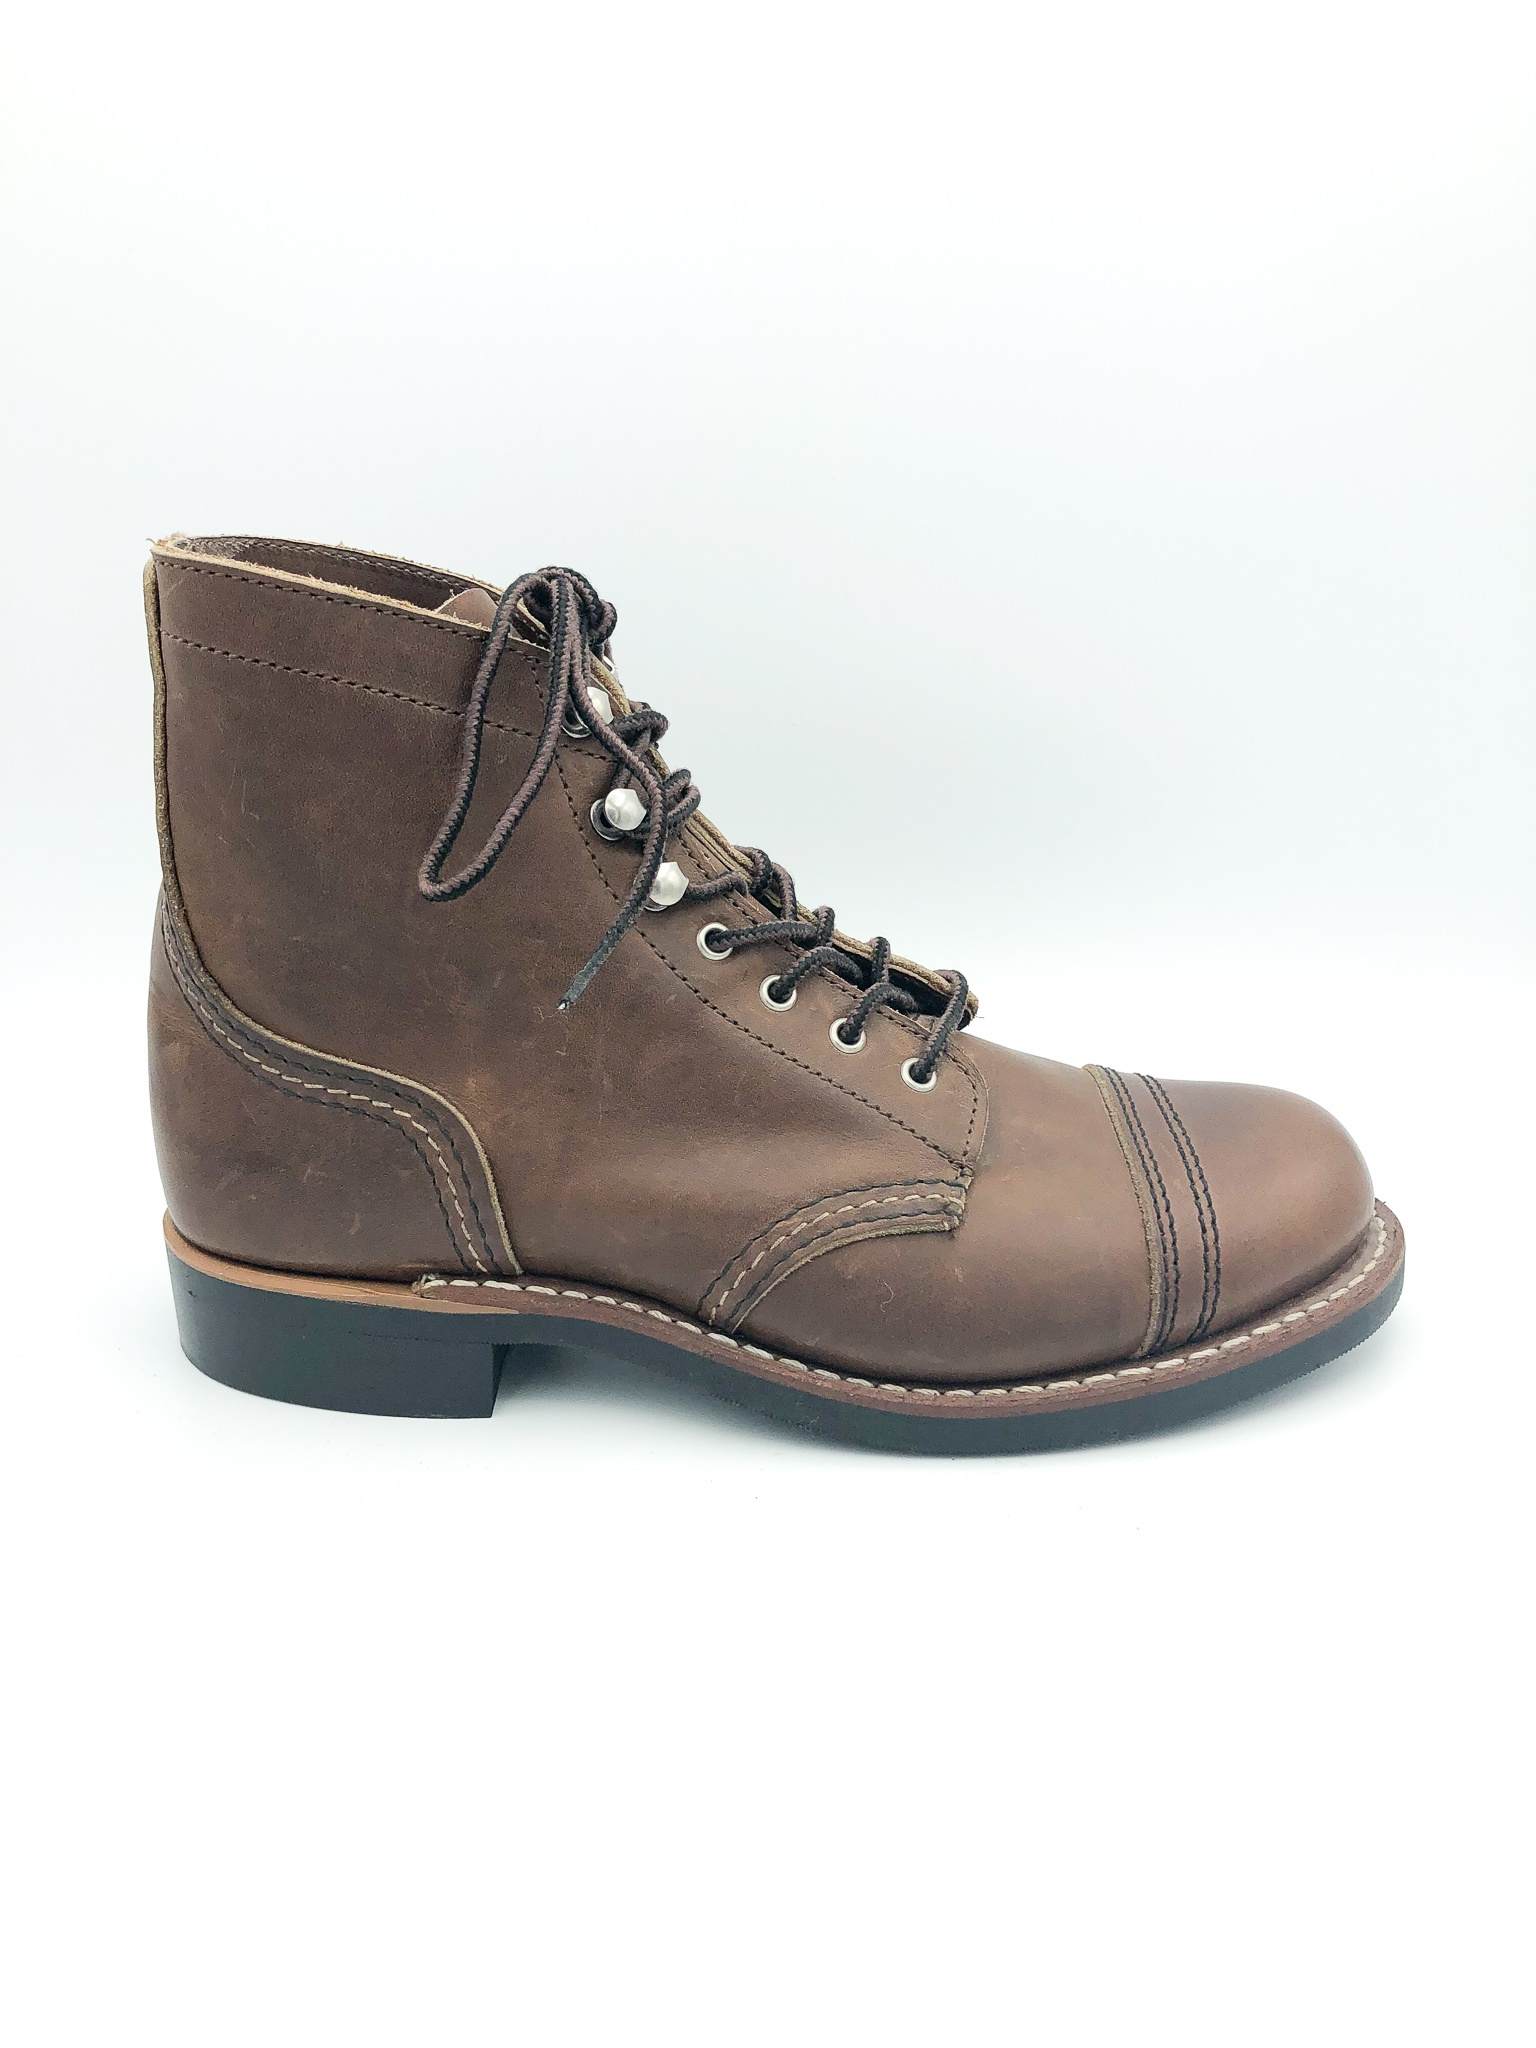 d03d2acf91a RED WING - WOMEN'S IRON RANGER IN AMBER HARNESS